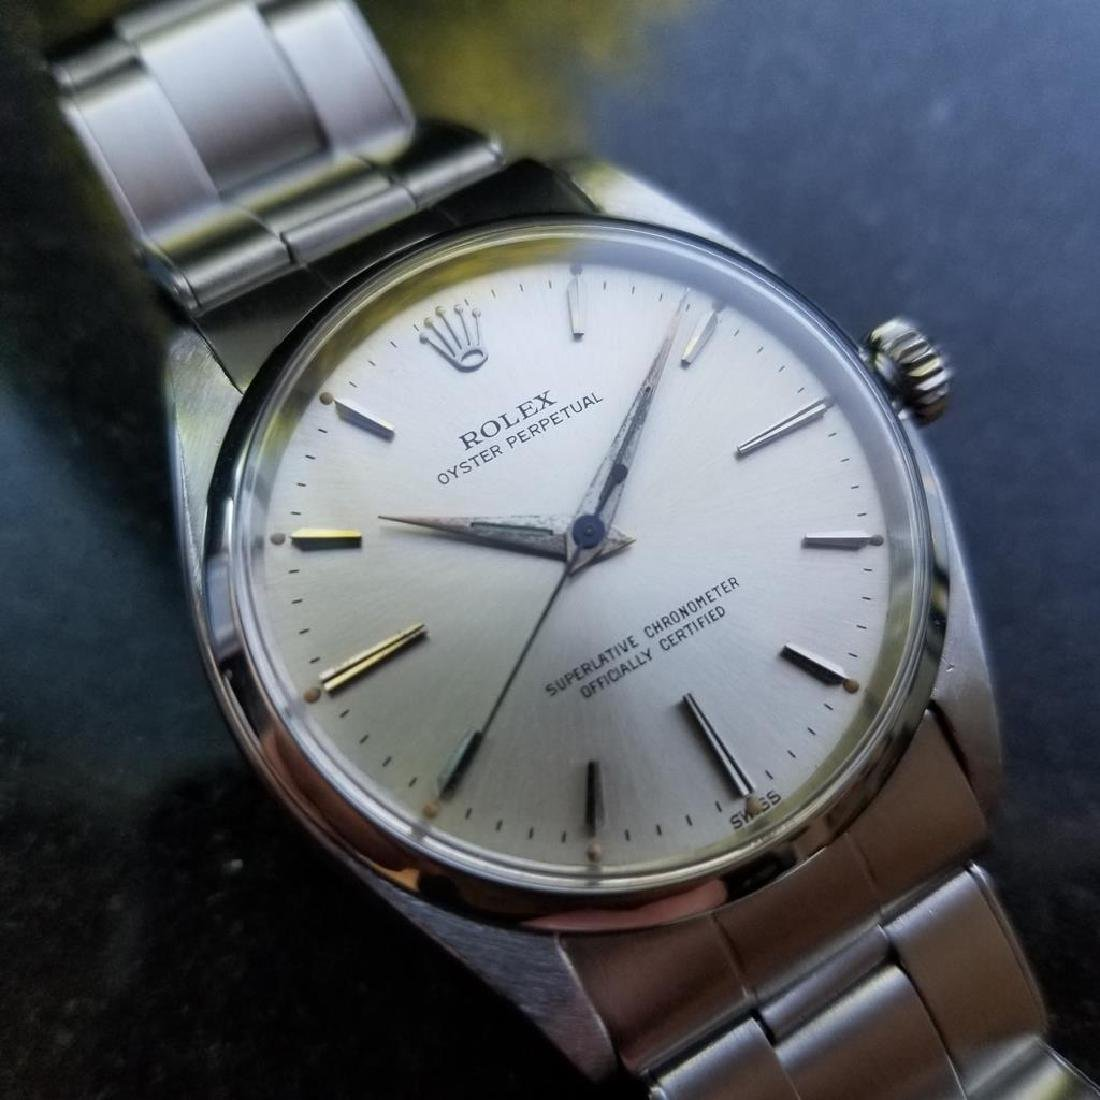 ROLEX Men's Oyster Perpetual 6564 Automatic Stainless